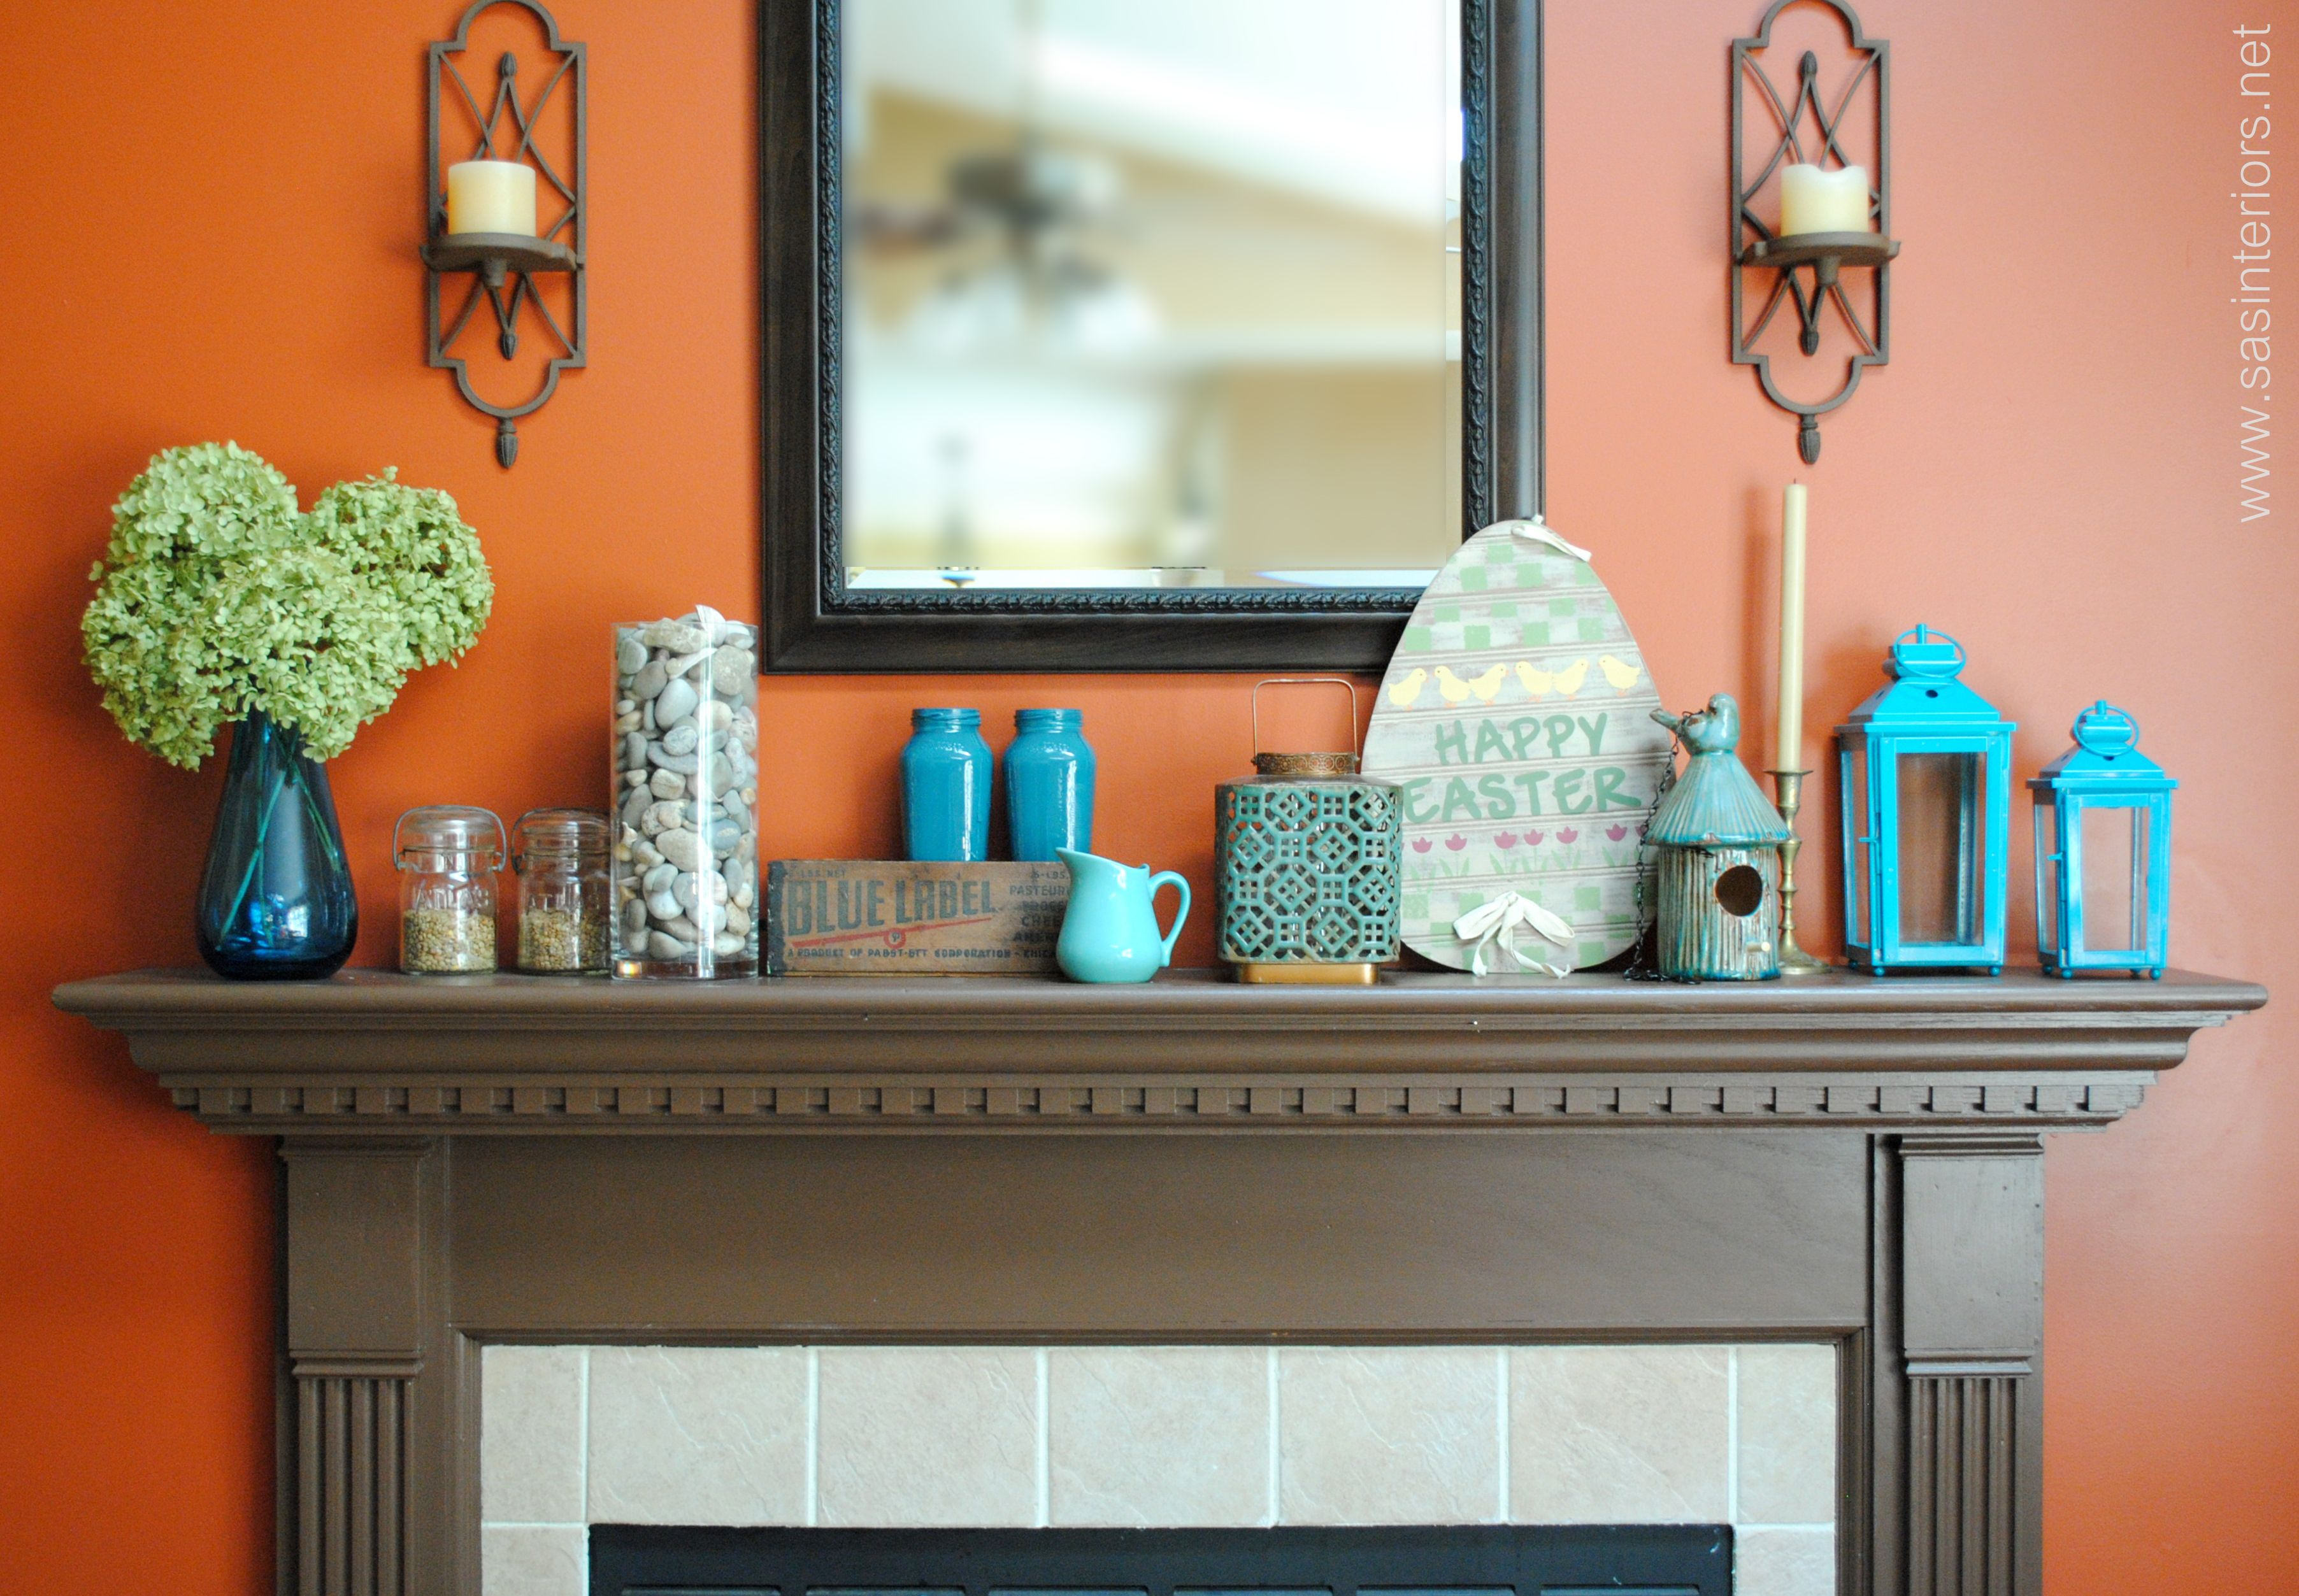 Spring Mantel with Shades of Turquoise by jenna burger on